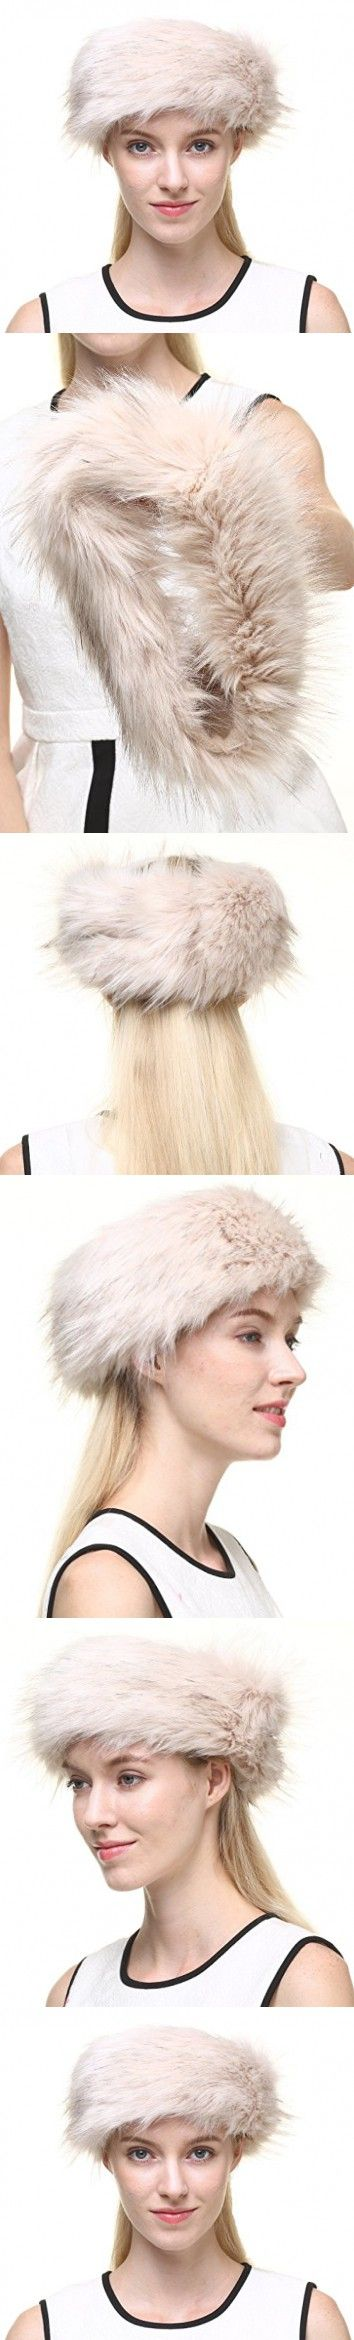 Vogueearth Women's Winter Faux Fur Earwarmer Earmuff Ski Hat Headband Beige